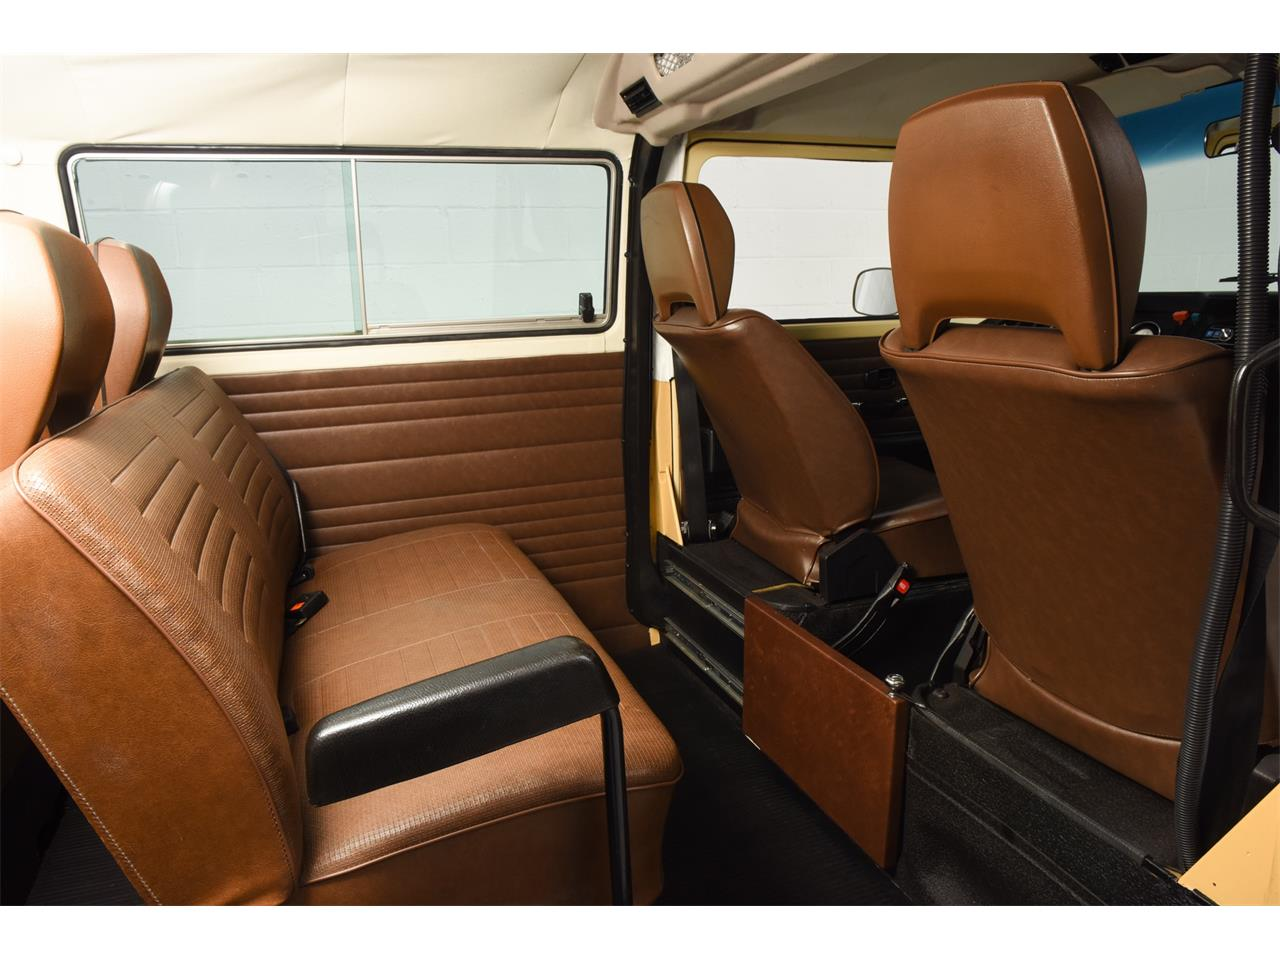 Large Picture of 1978 Volkswagen Bus - OOW9